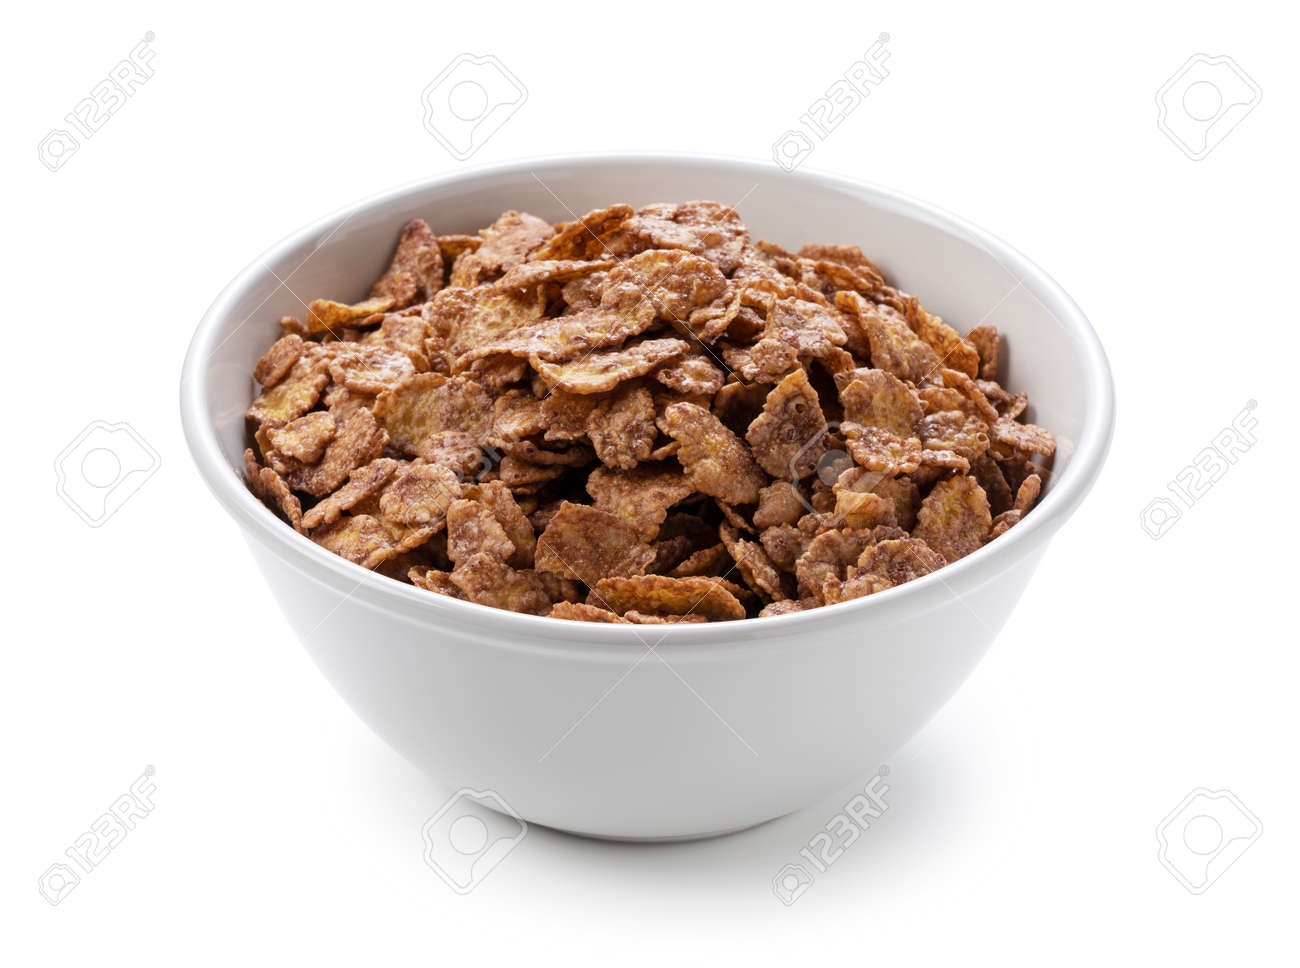 Chocolate cornflakes in a white ceramic bowl set against a white background. - 169892576